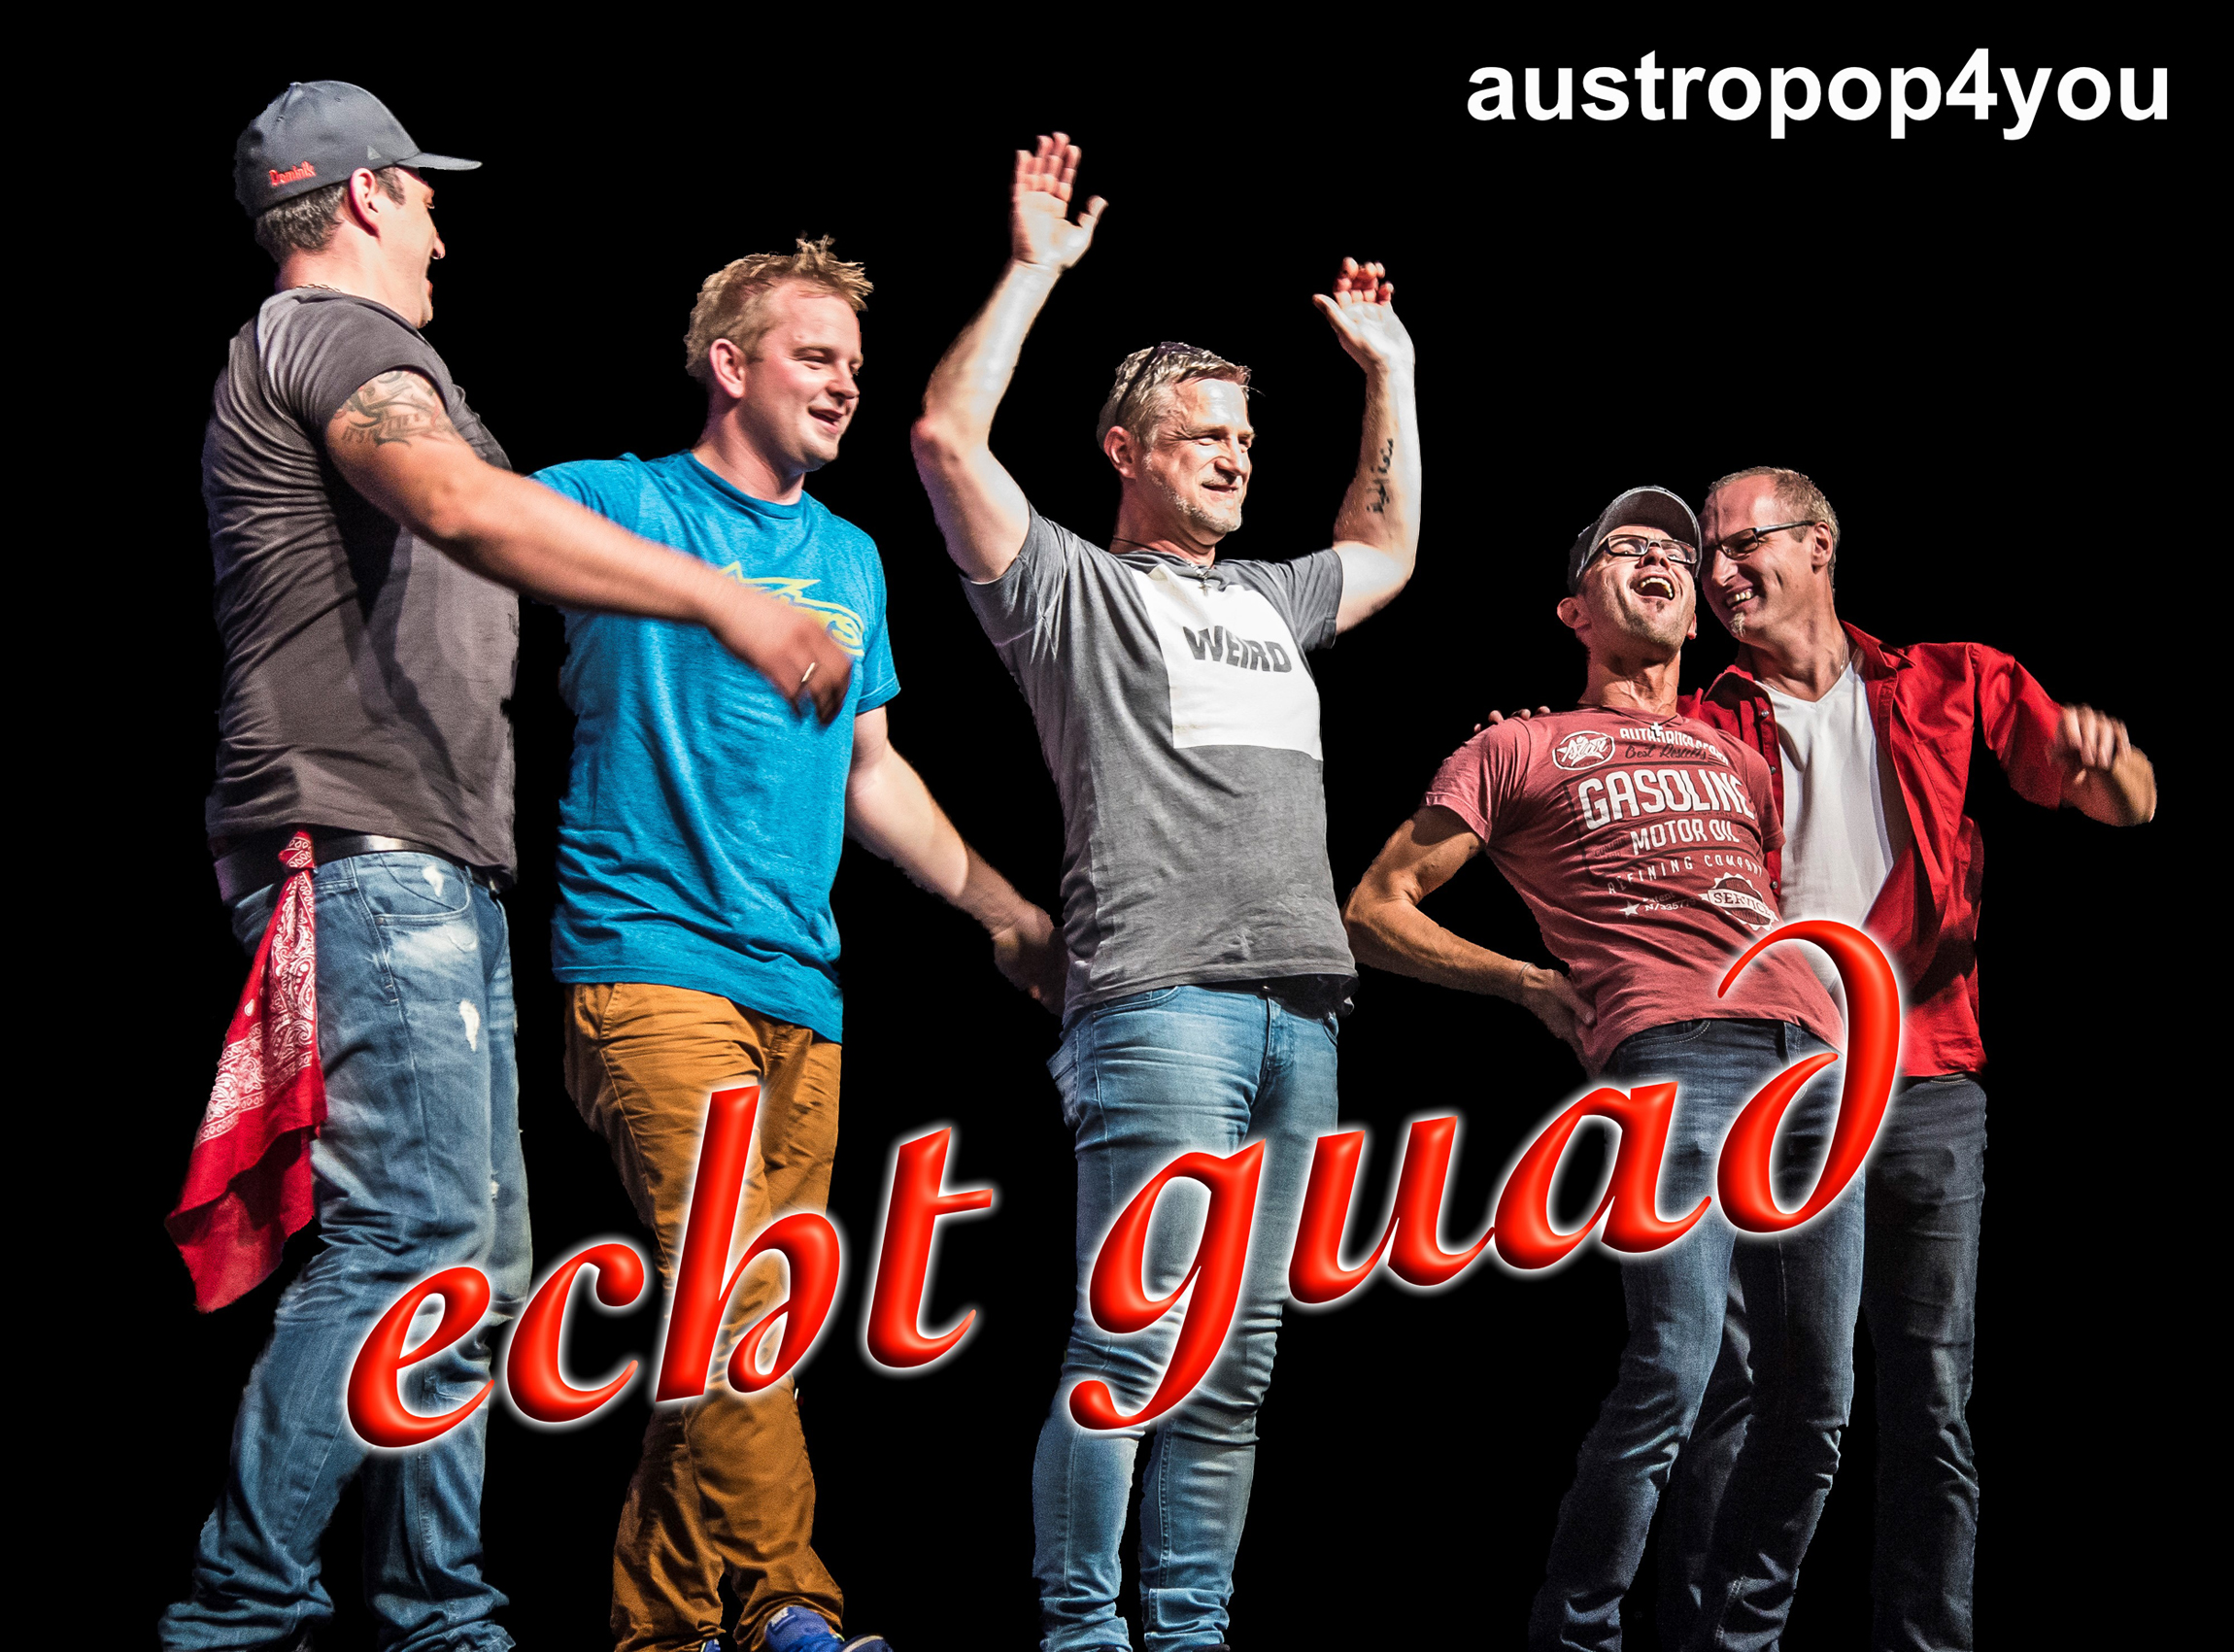 echt guad – Austropop4you